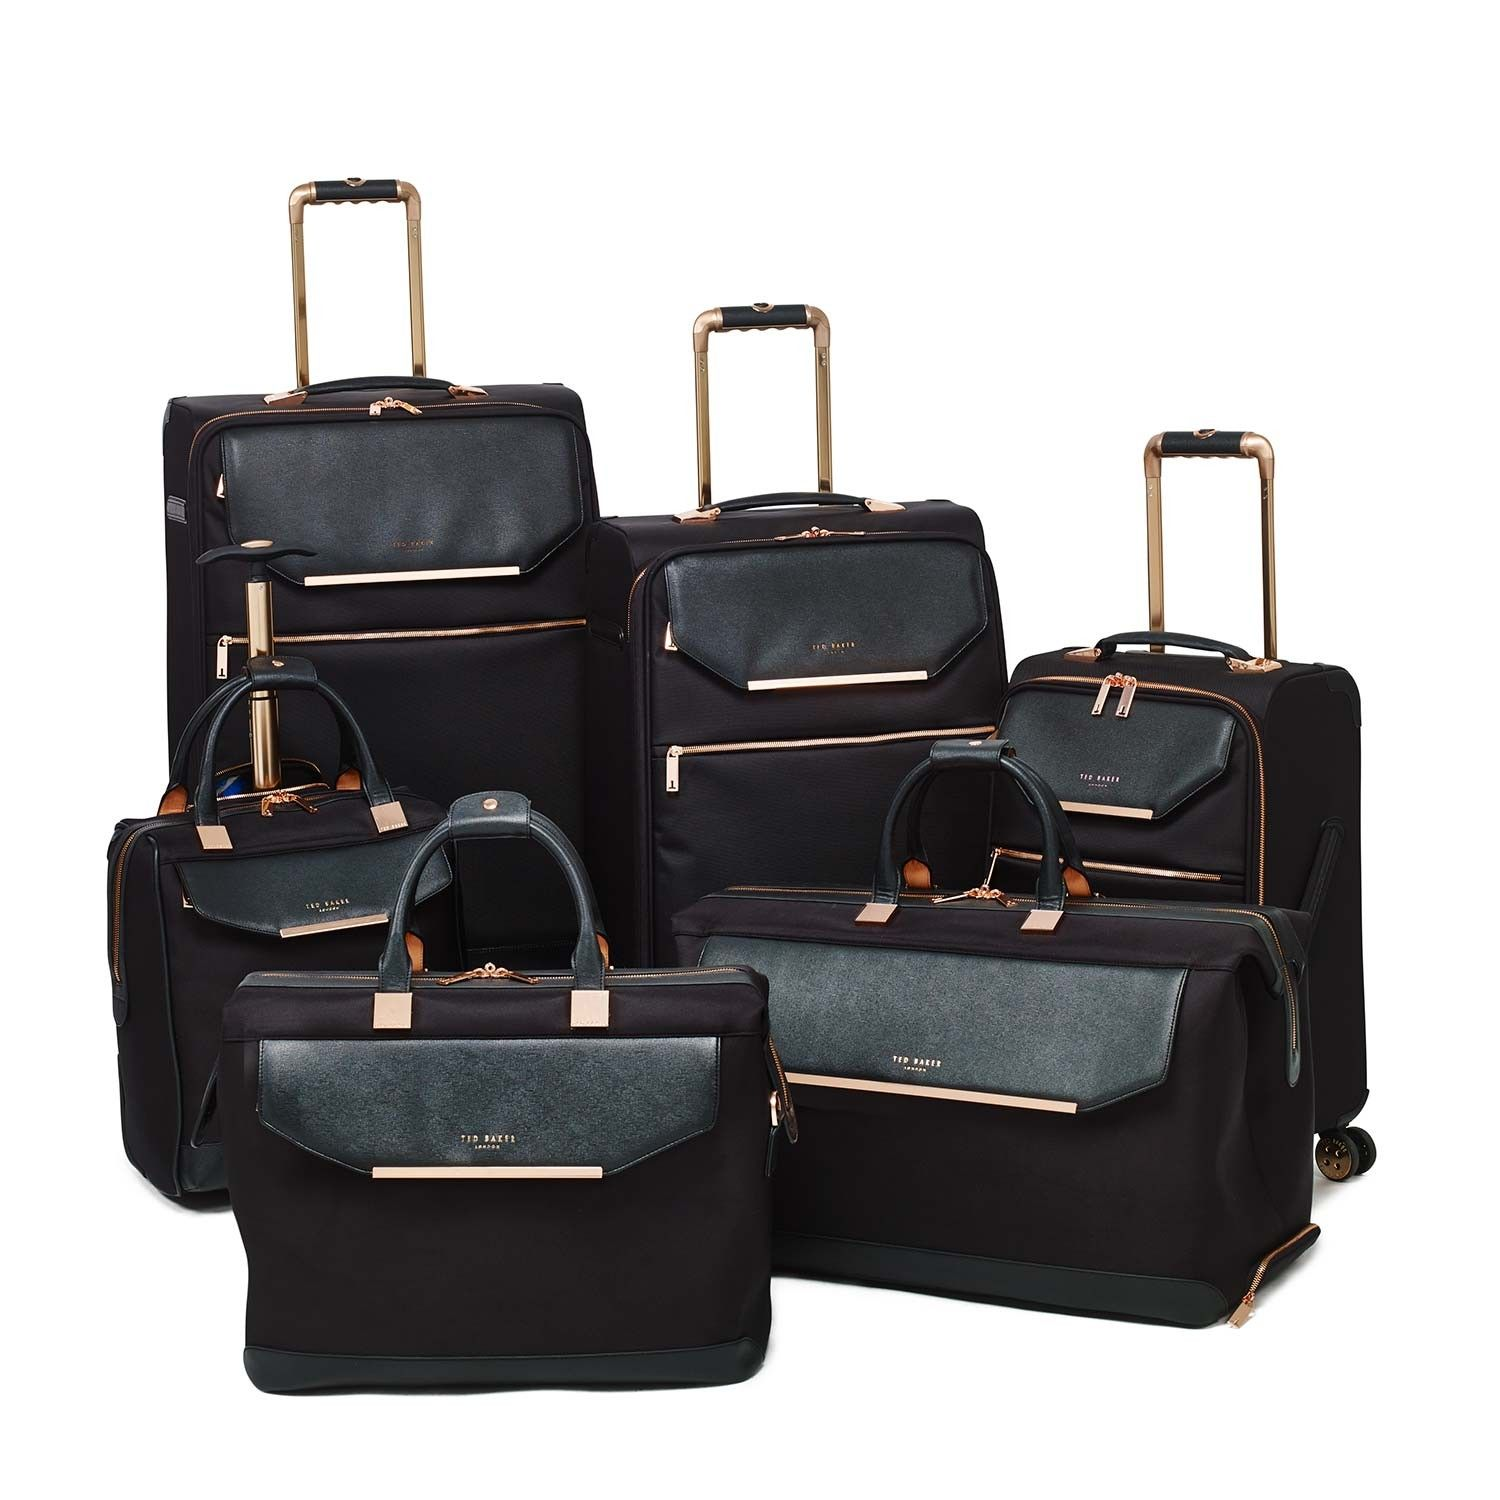 Luggage Ted Baker Albany Collection TBW5001 4 Wheel Large Case ...